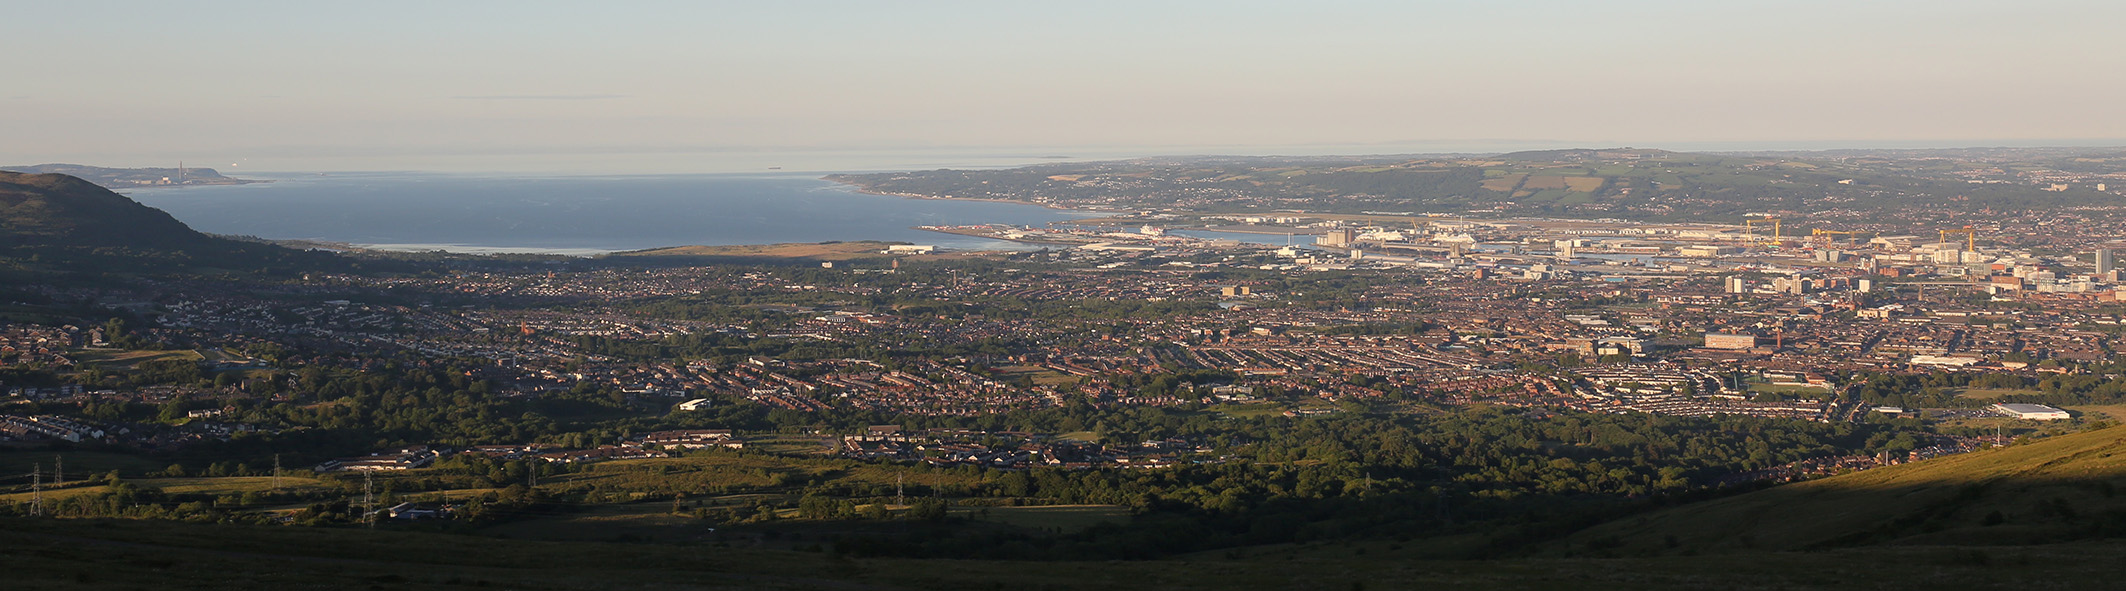 Belfast in the evening sun viewed from Divis